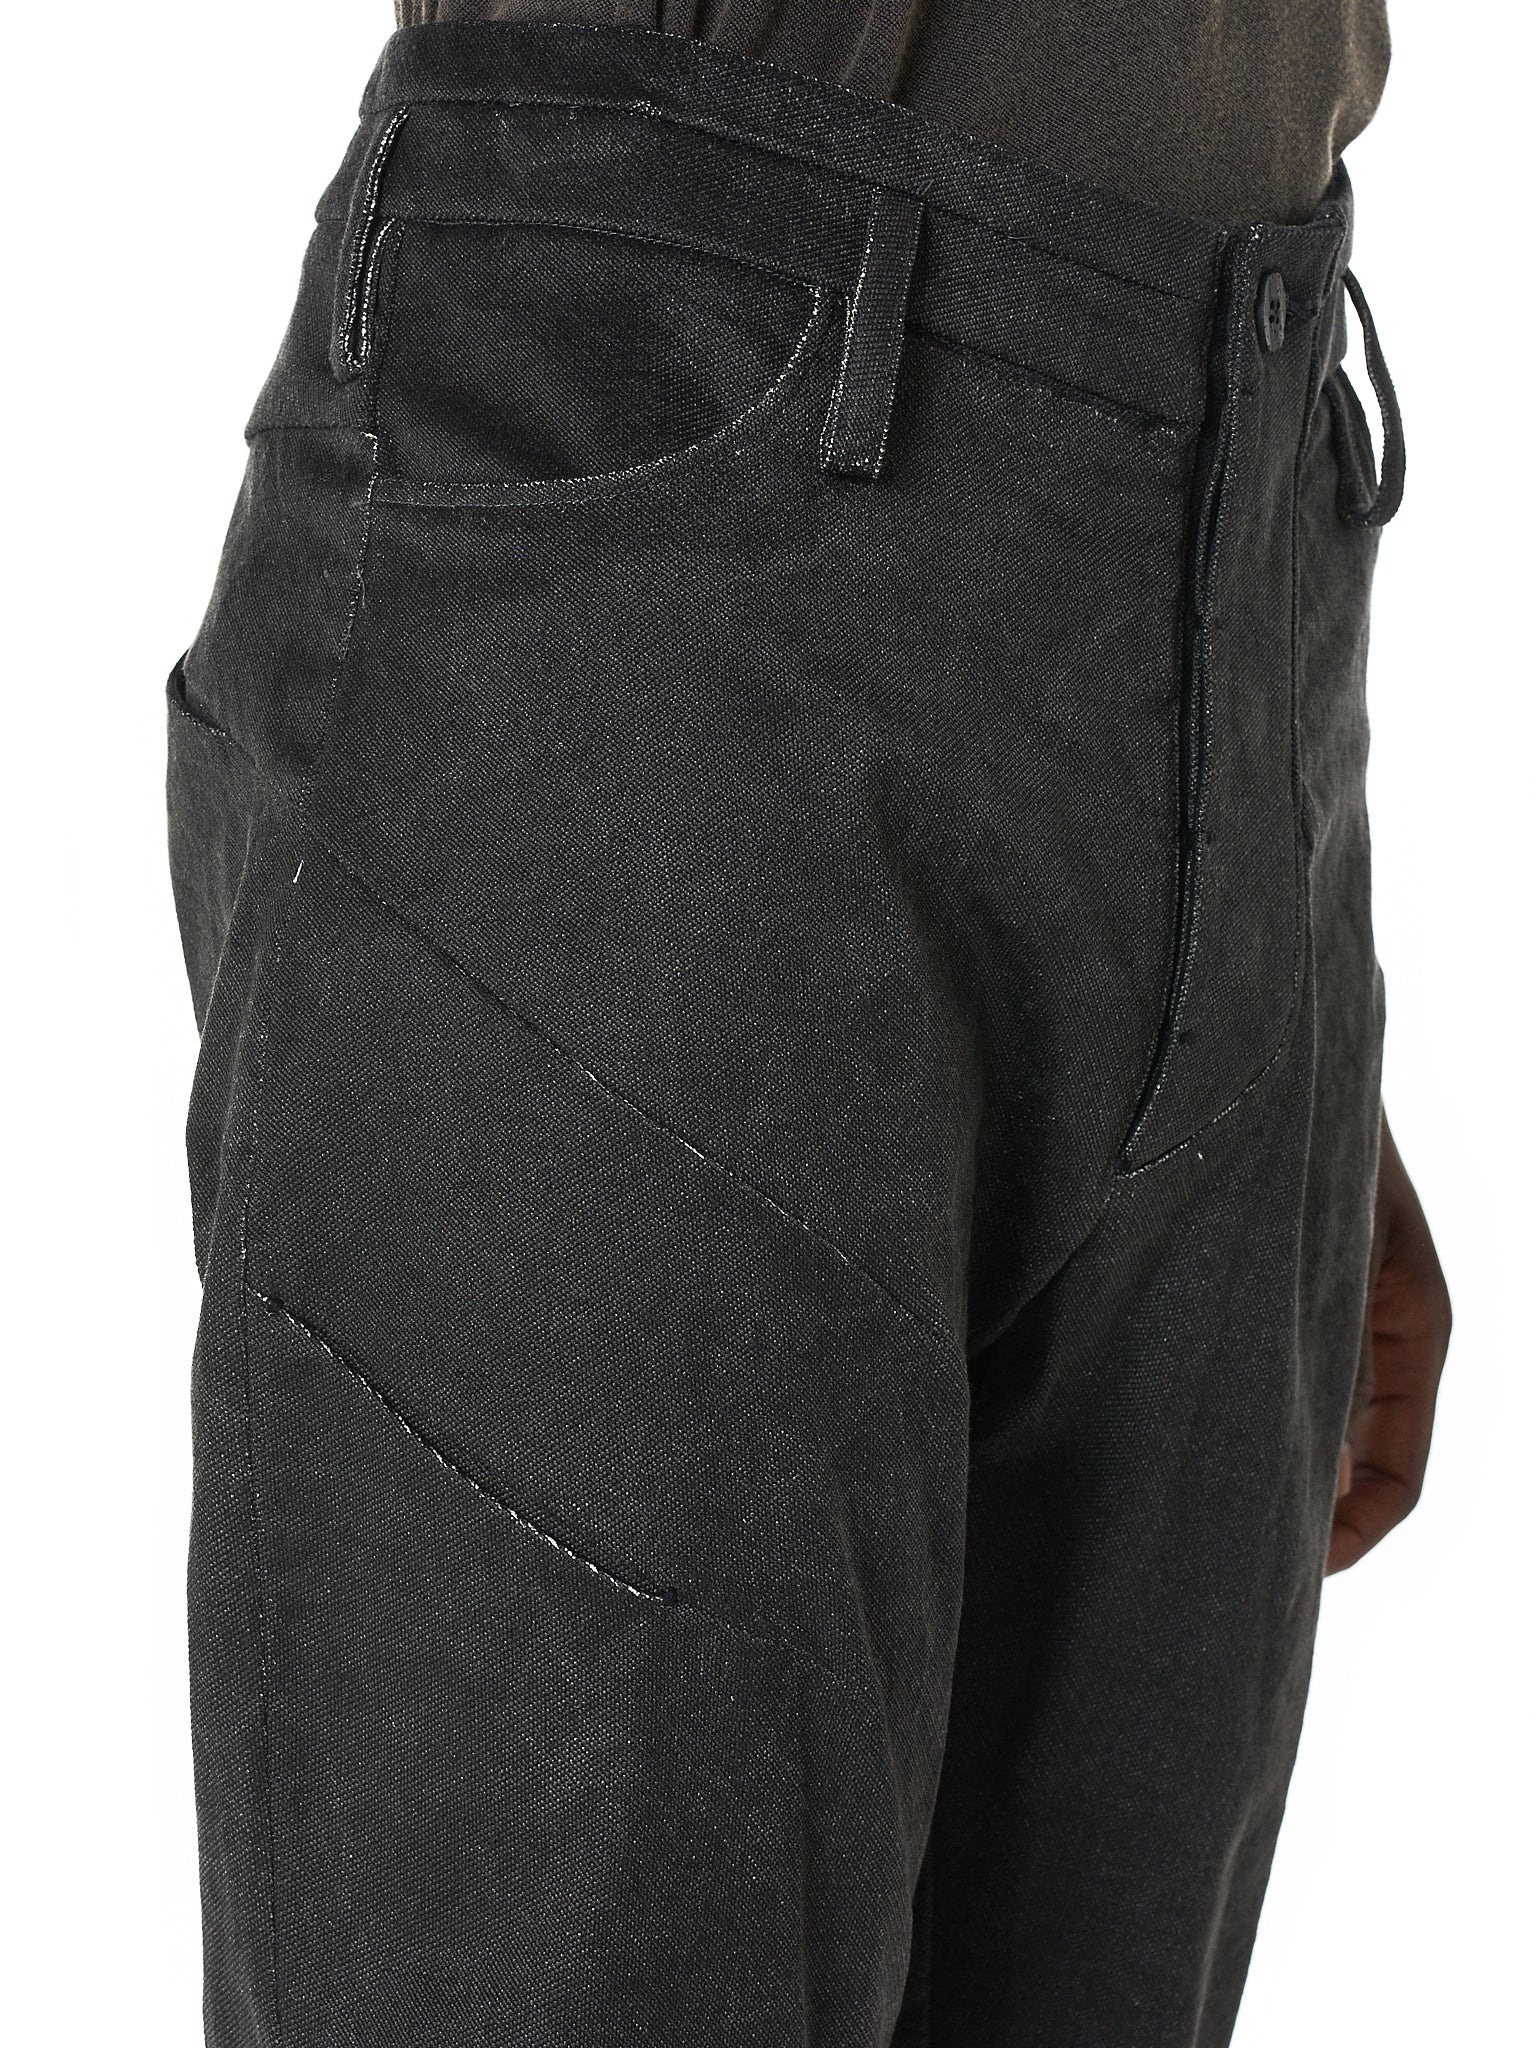 Darted Stacked Pant (M23-783-630-BLACK)